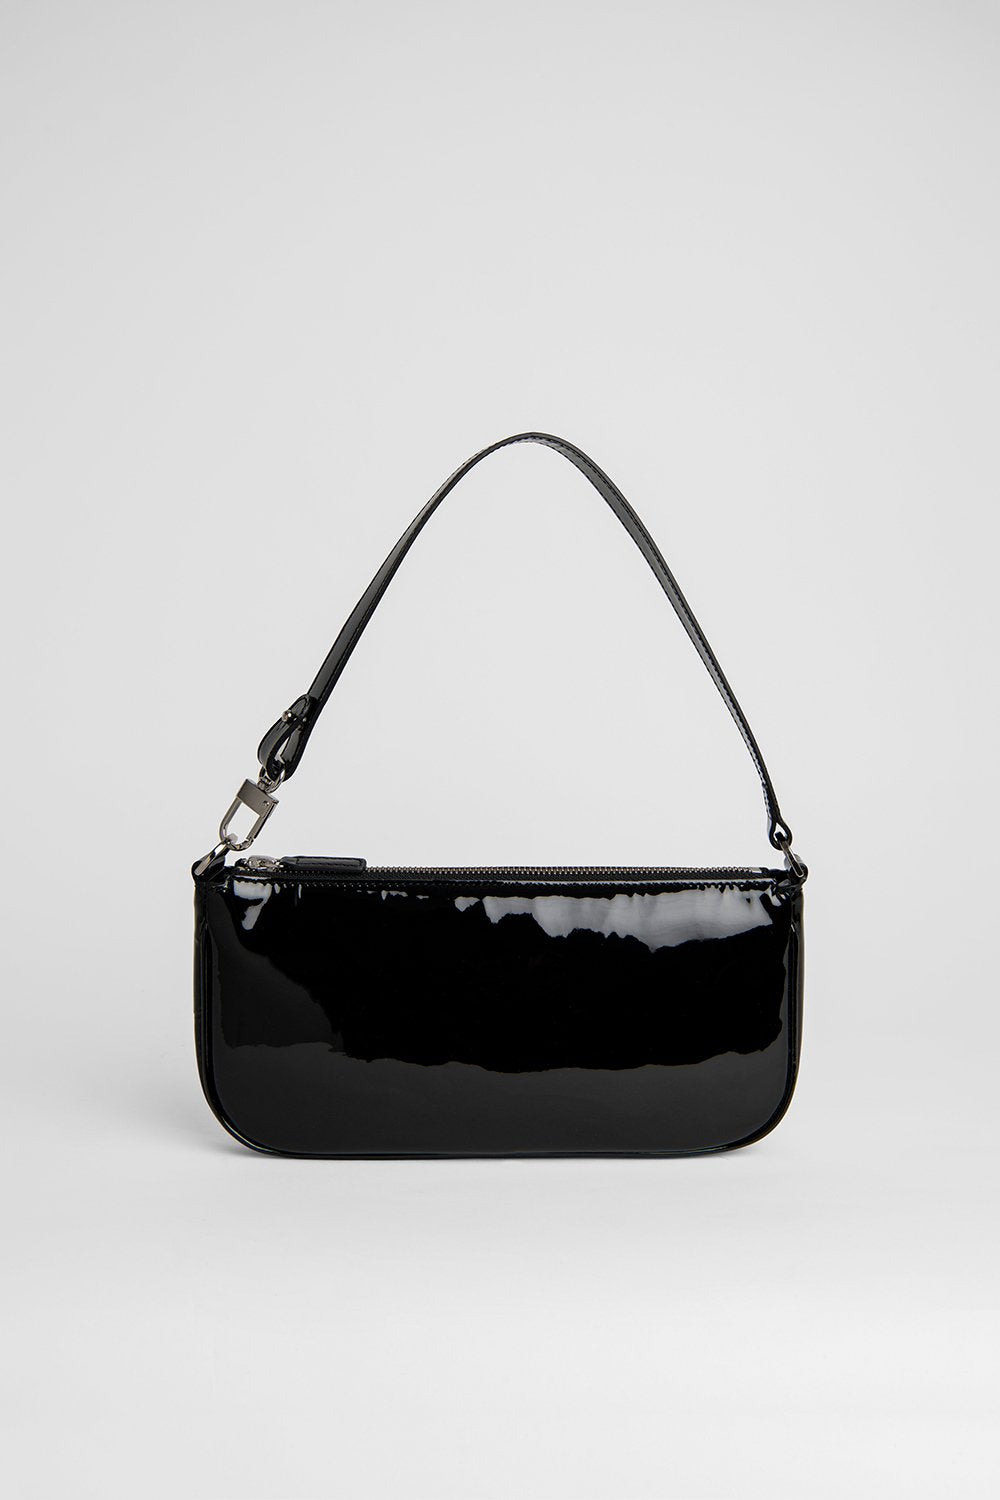 BY FAR RACHEL BLACK PATENT LEATHER